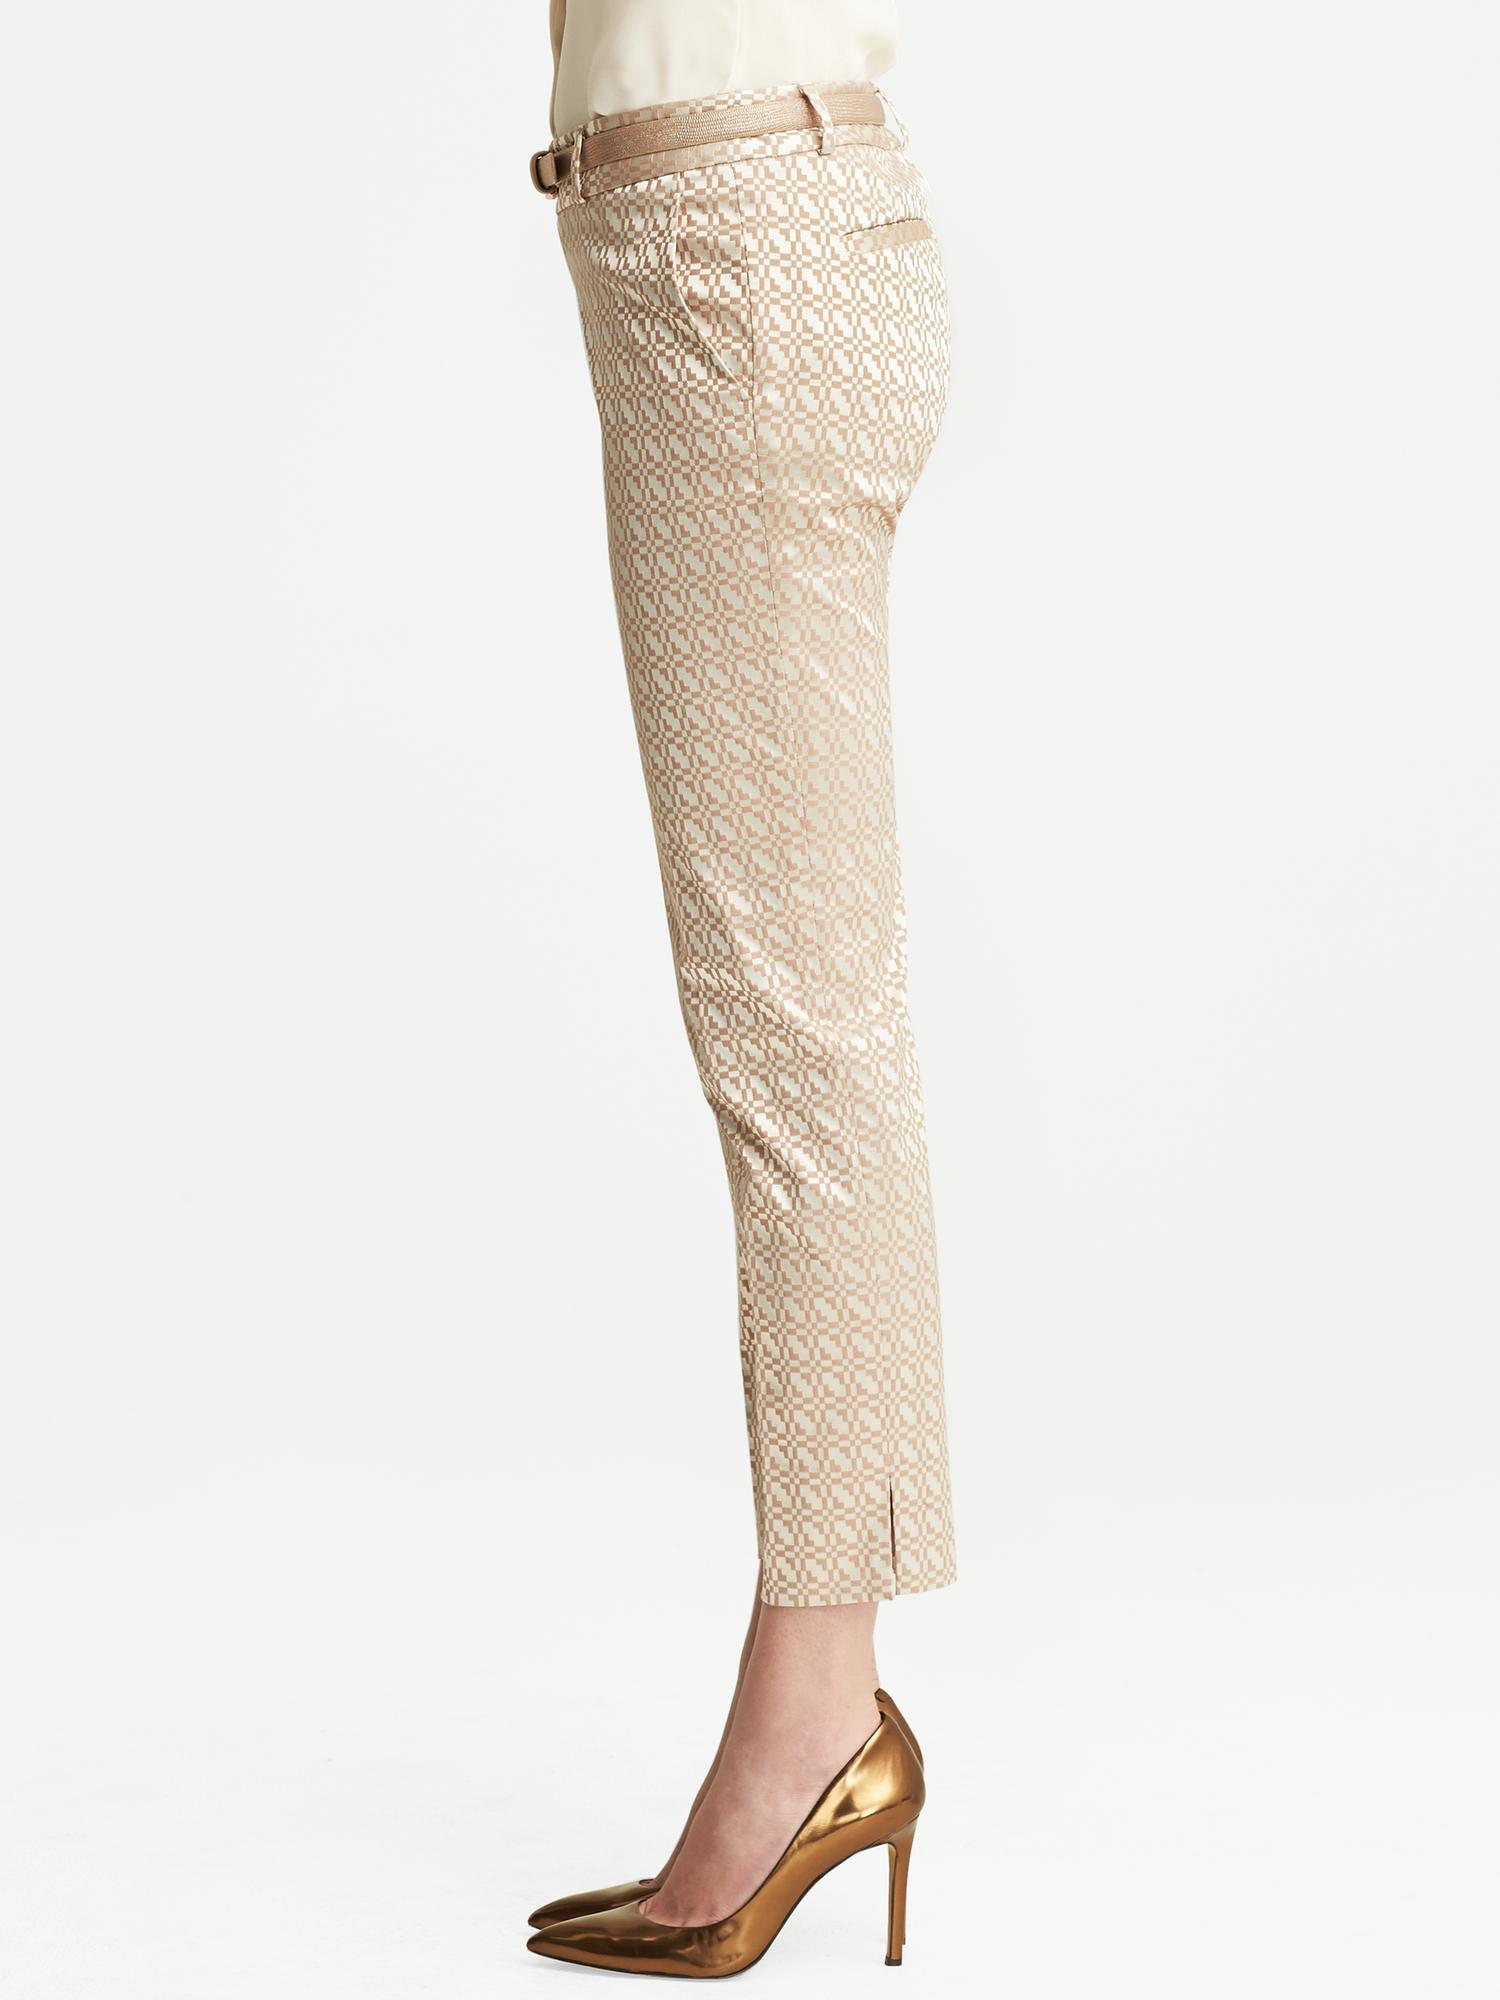 483ab58fb27f19 Banana Republic Camden Fit Beige Jacquard Ankle Pant Beige in ...